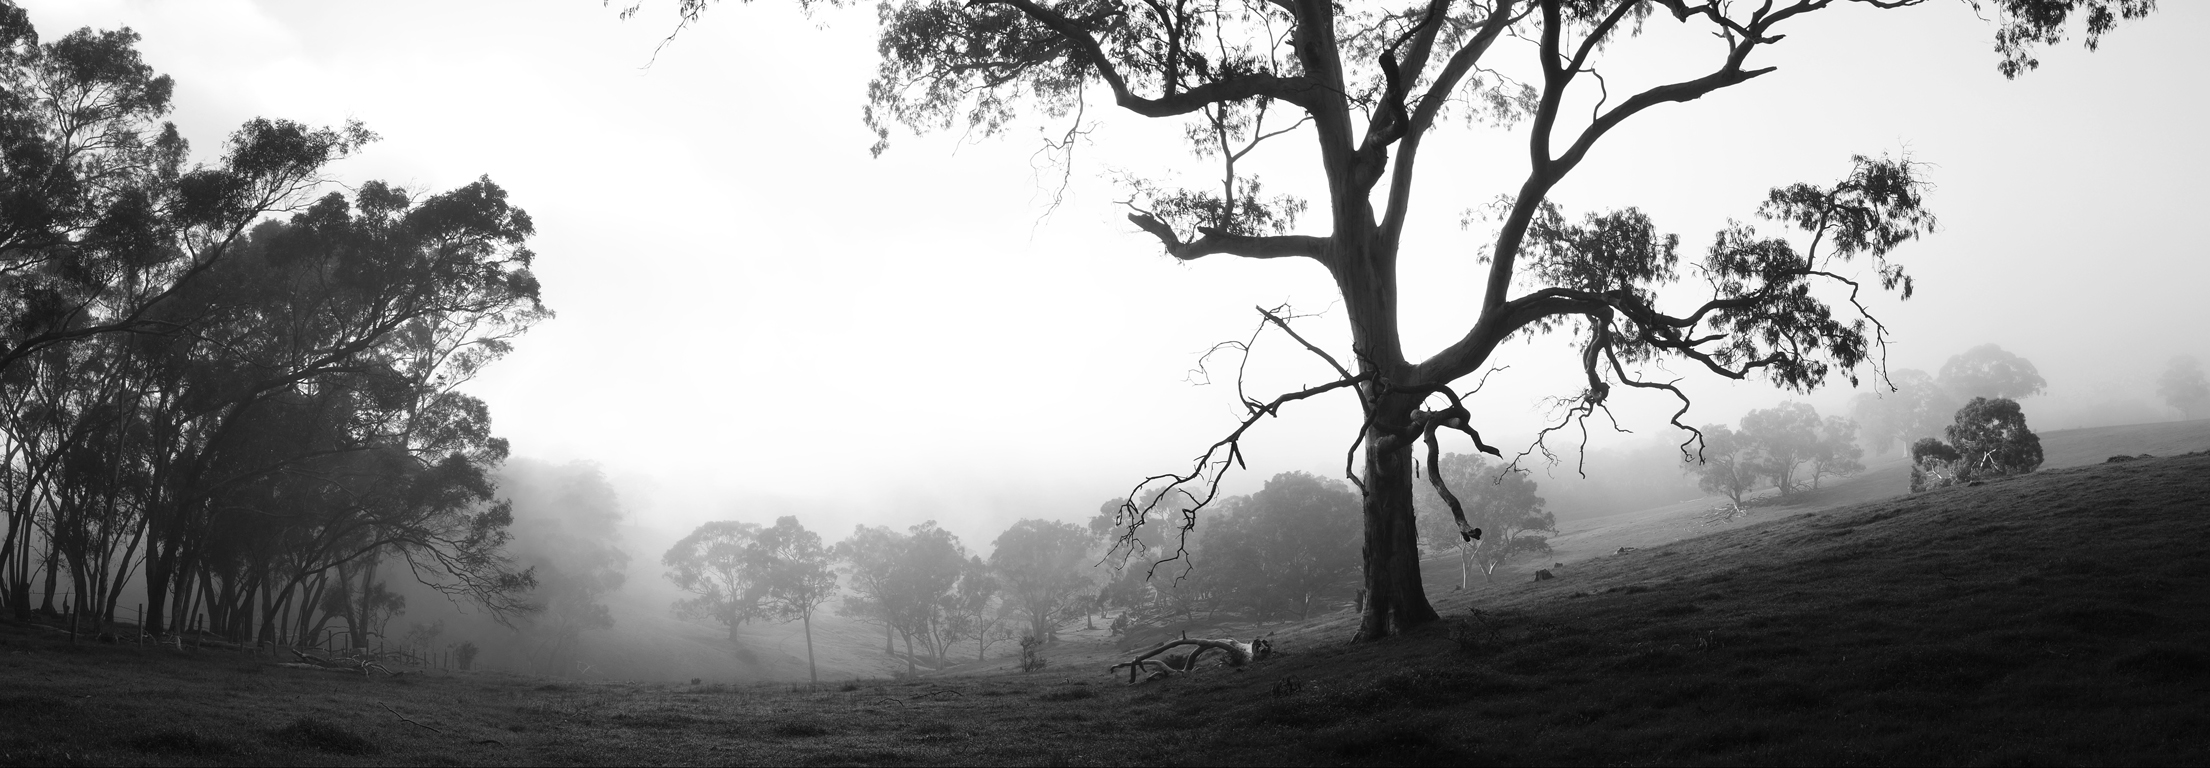 TASHA MUNRO Once upon a time in a foggy valley